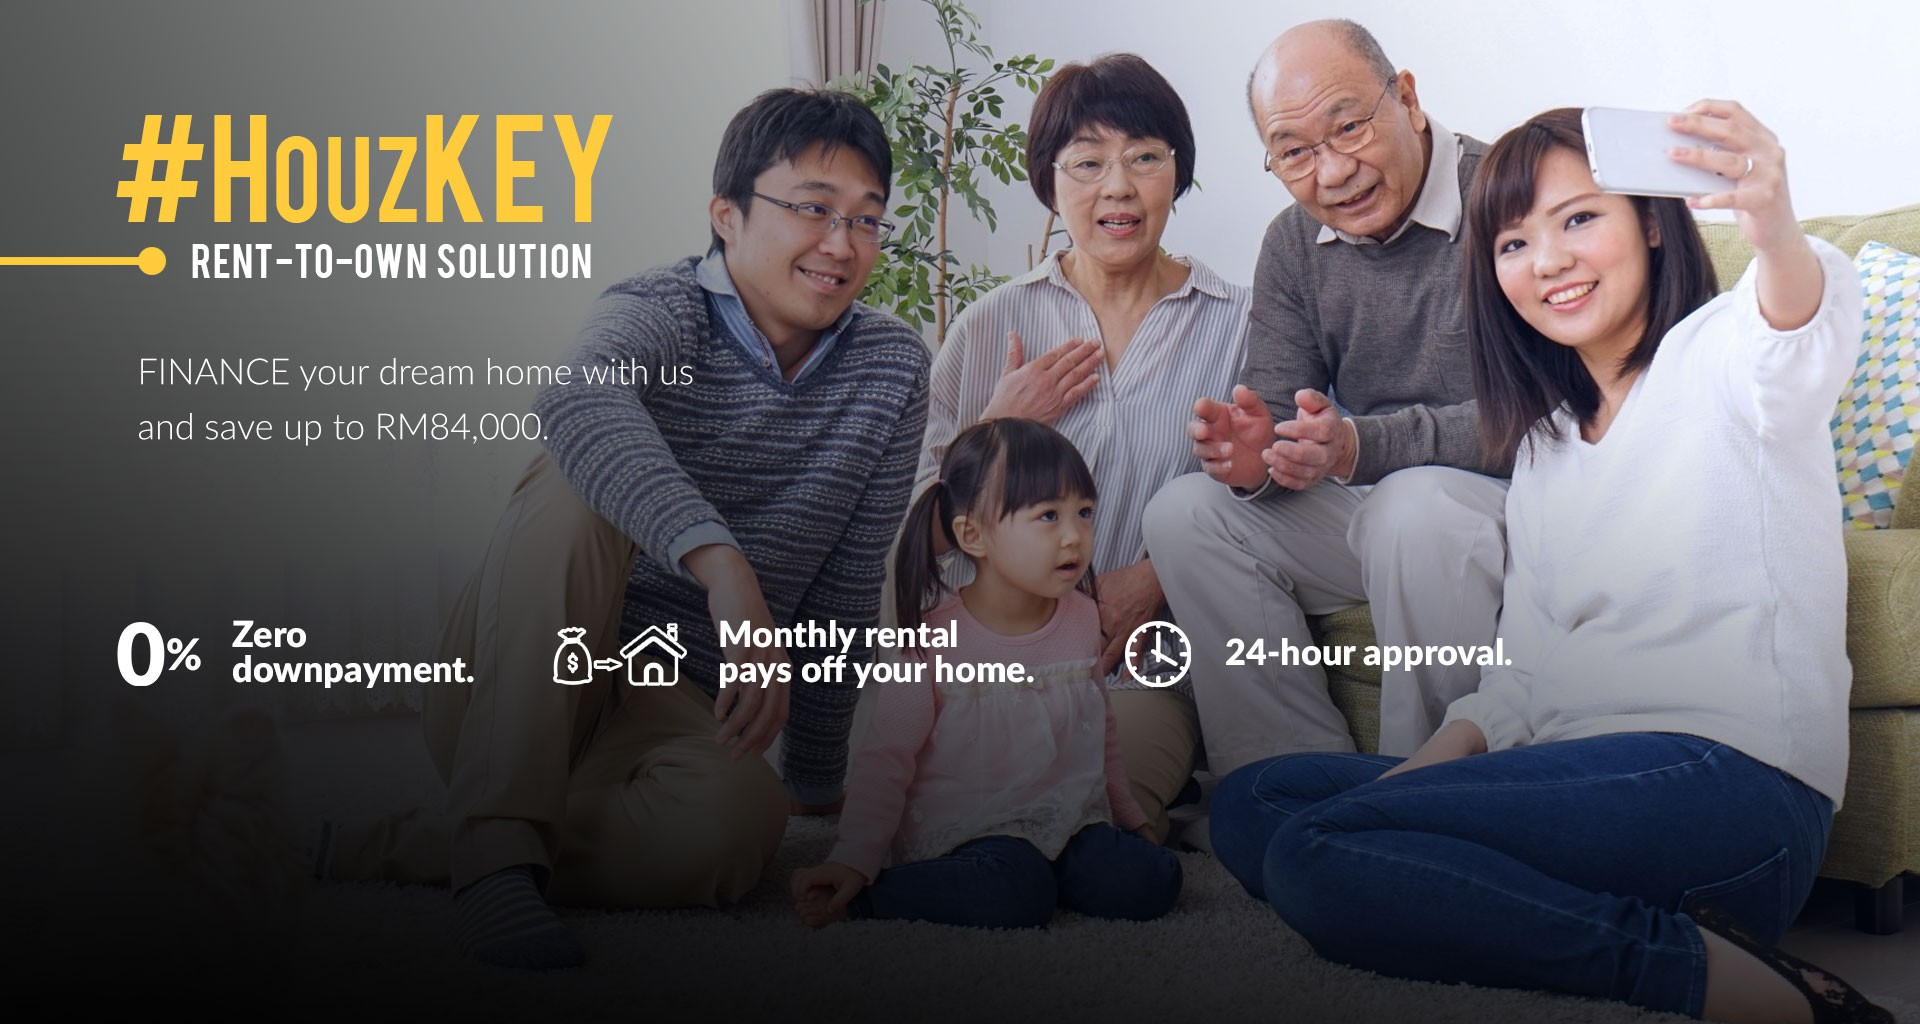 HouzKEY Rent-To-Own Solution